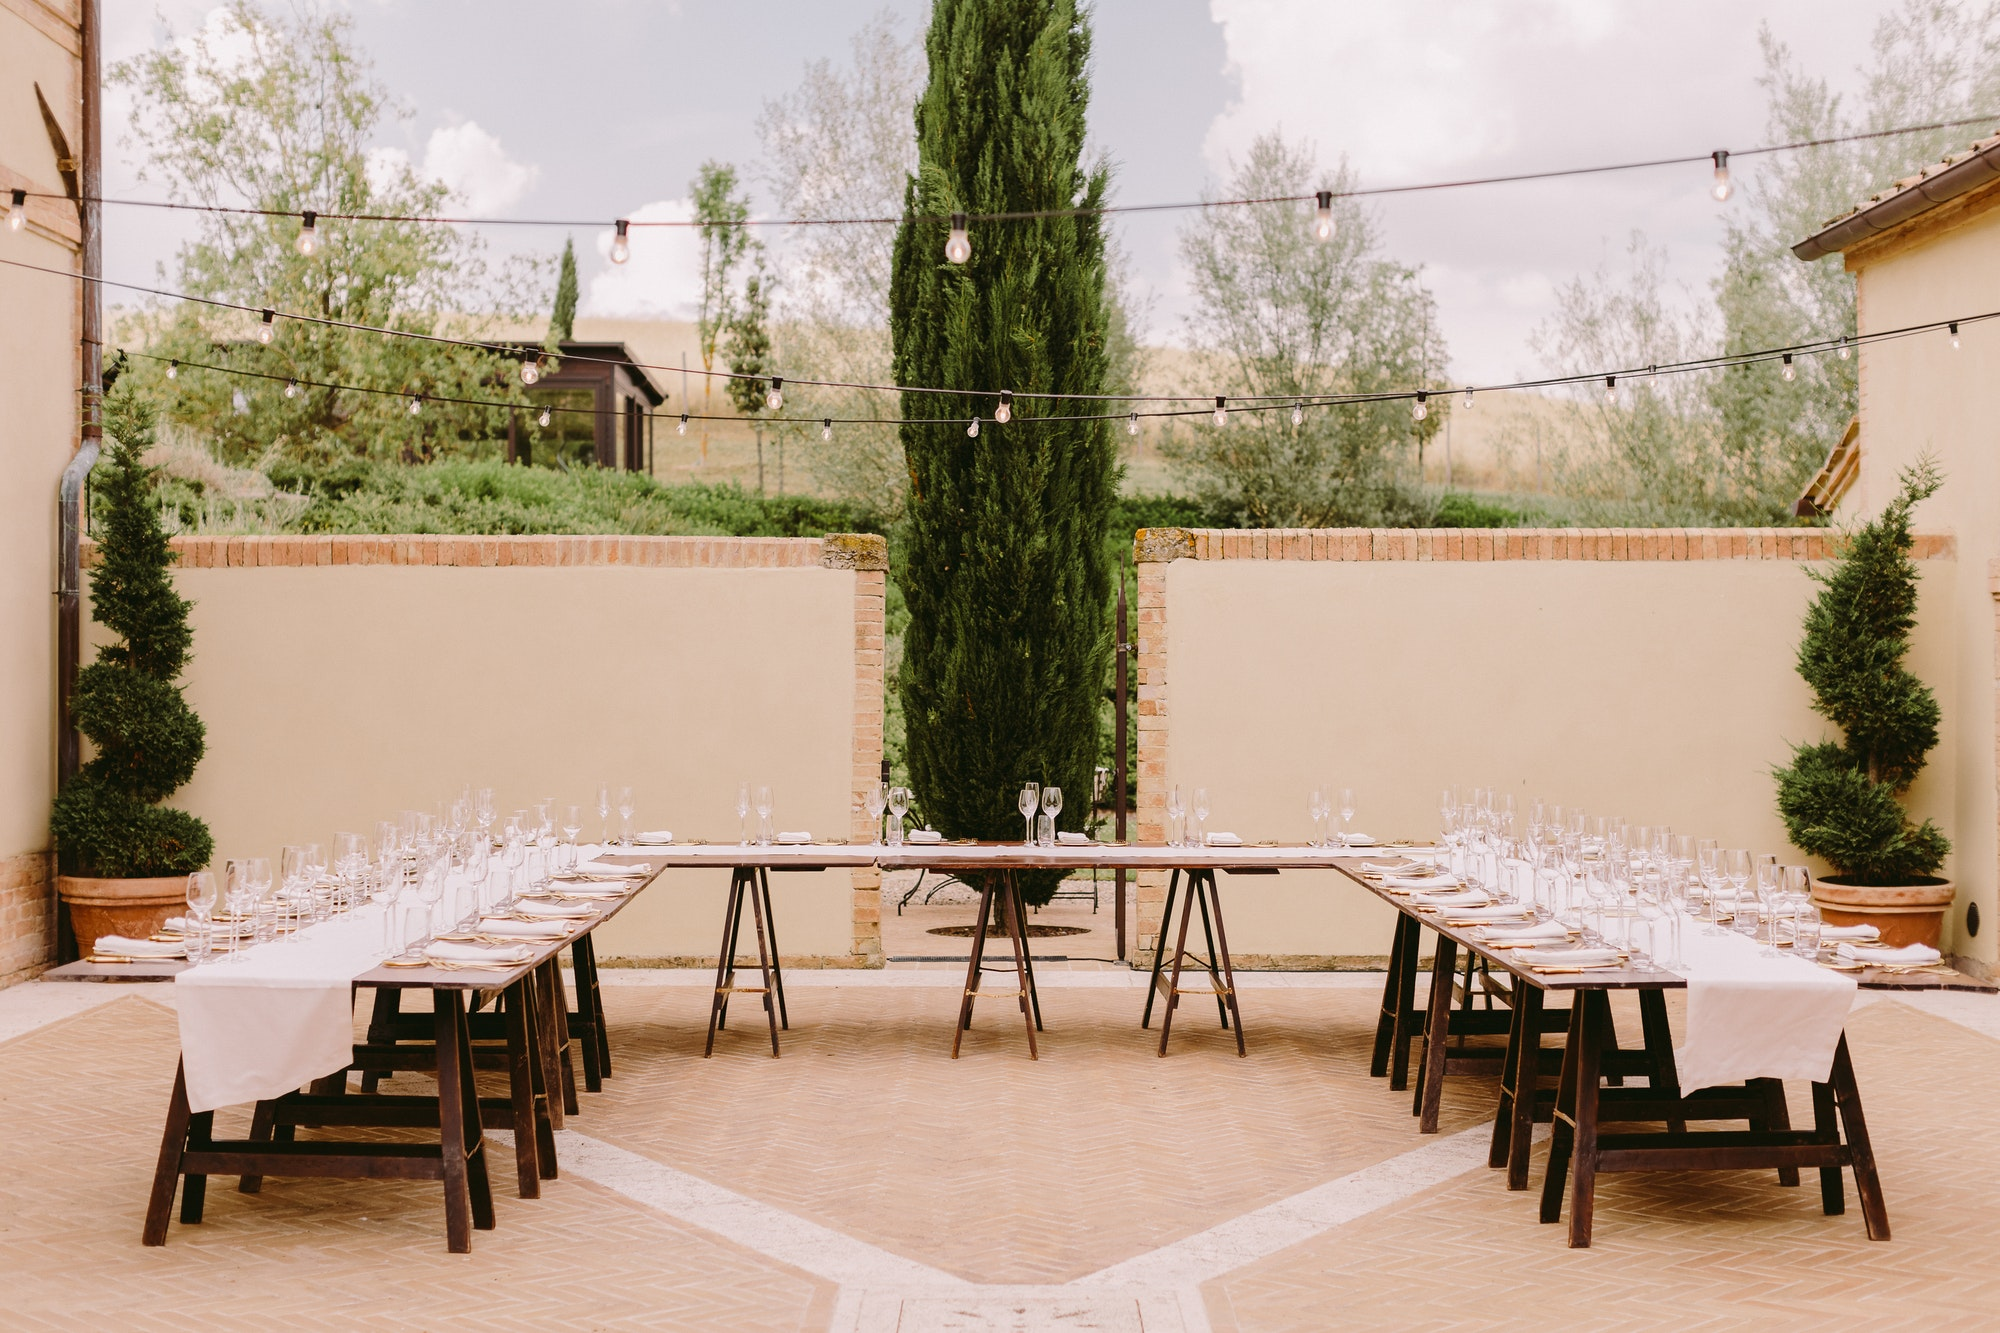 event table coverage outdoors with plates and glasses